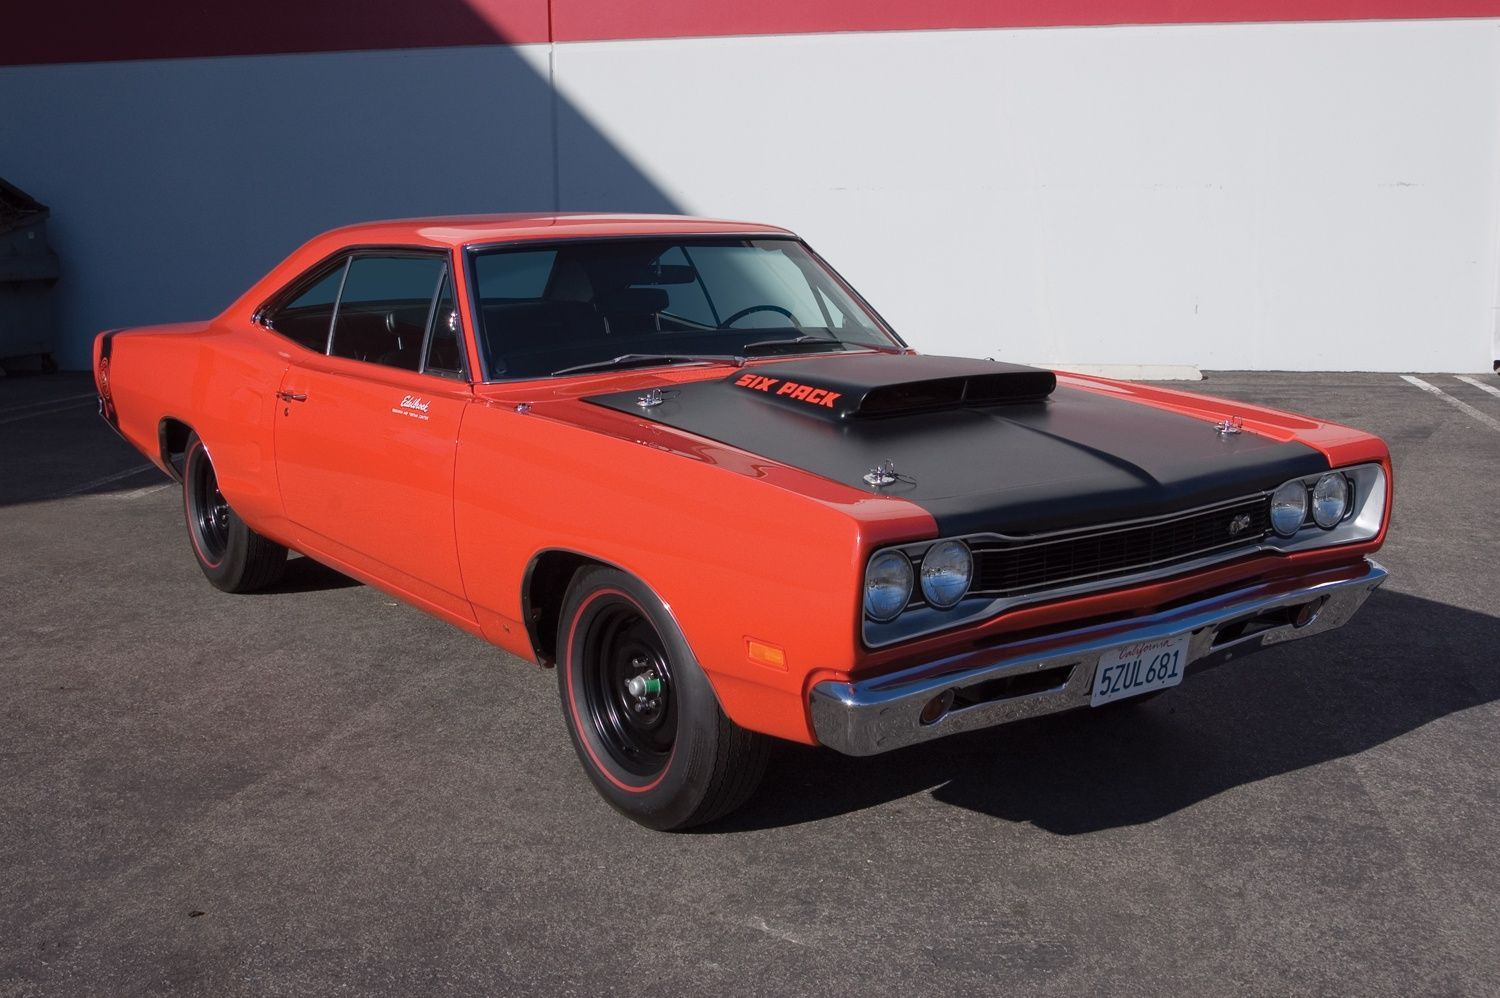 29 Dodge Avenger | '69 Dodge Super Bee